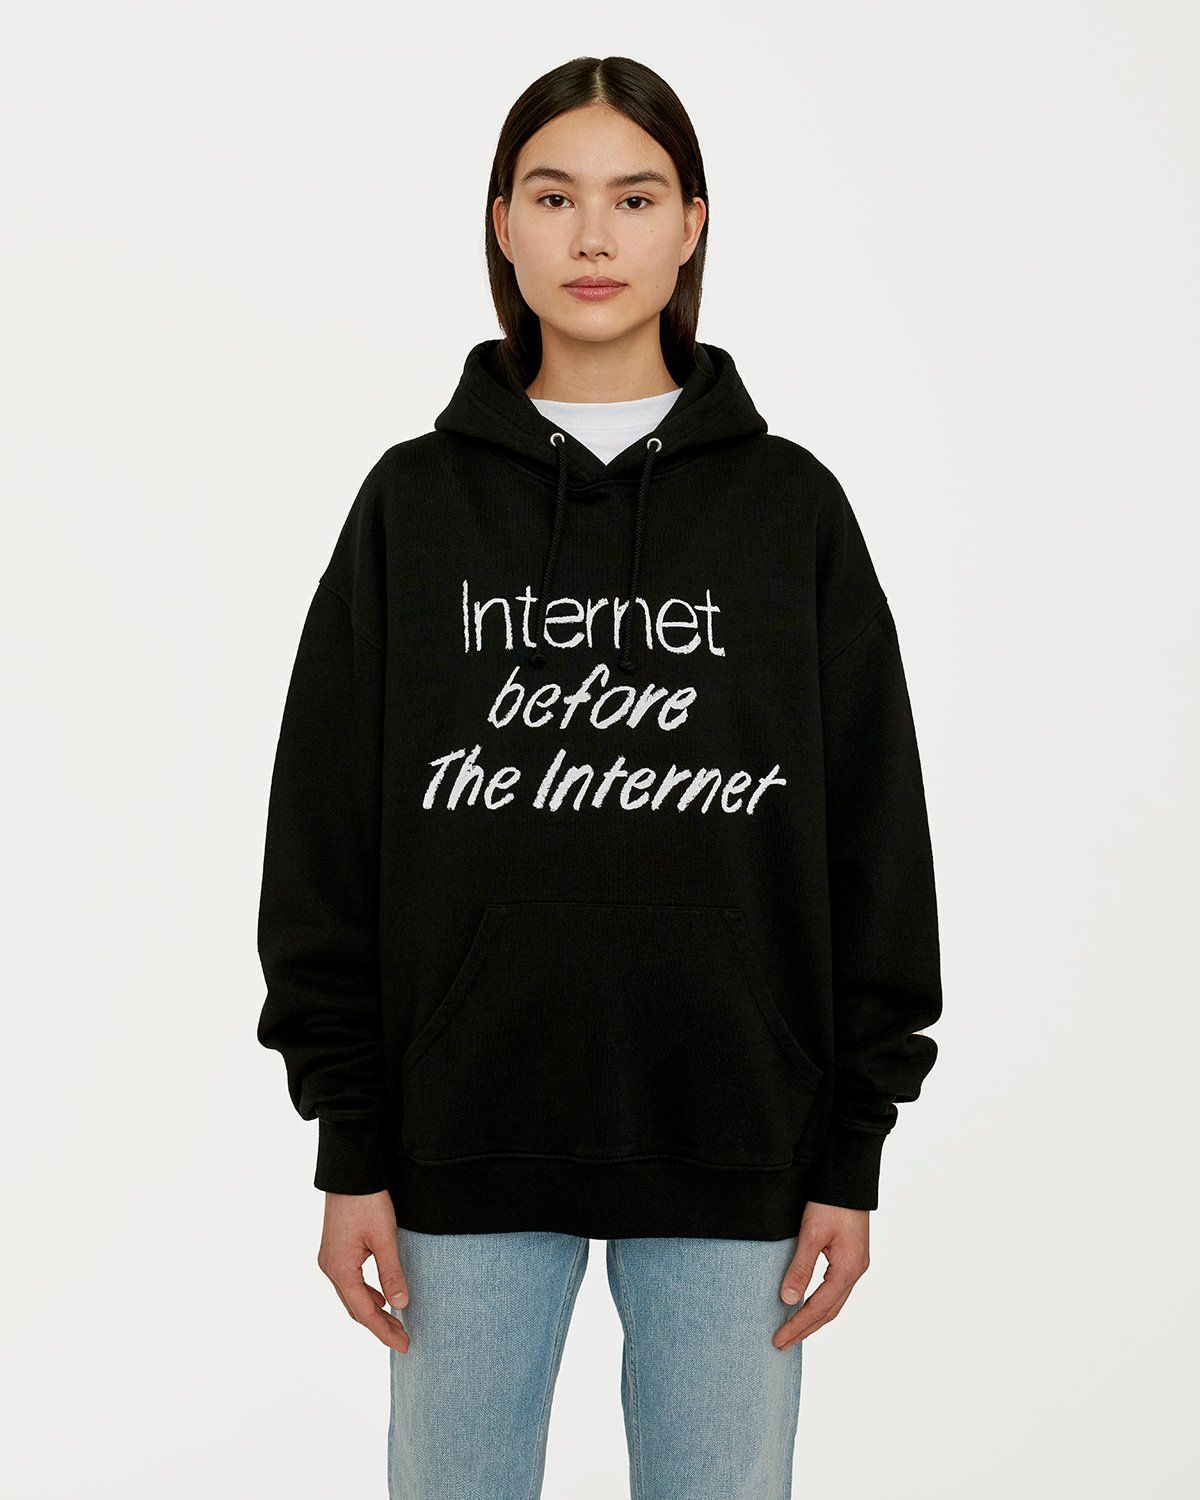 colette Mon Amour - The Internet Before The Internet Hoodie Black - Image 4